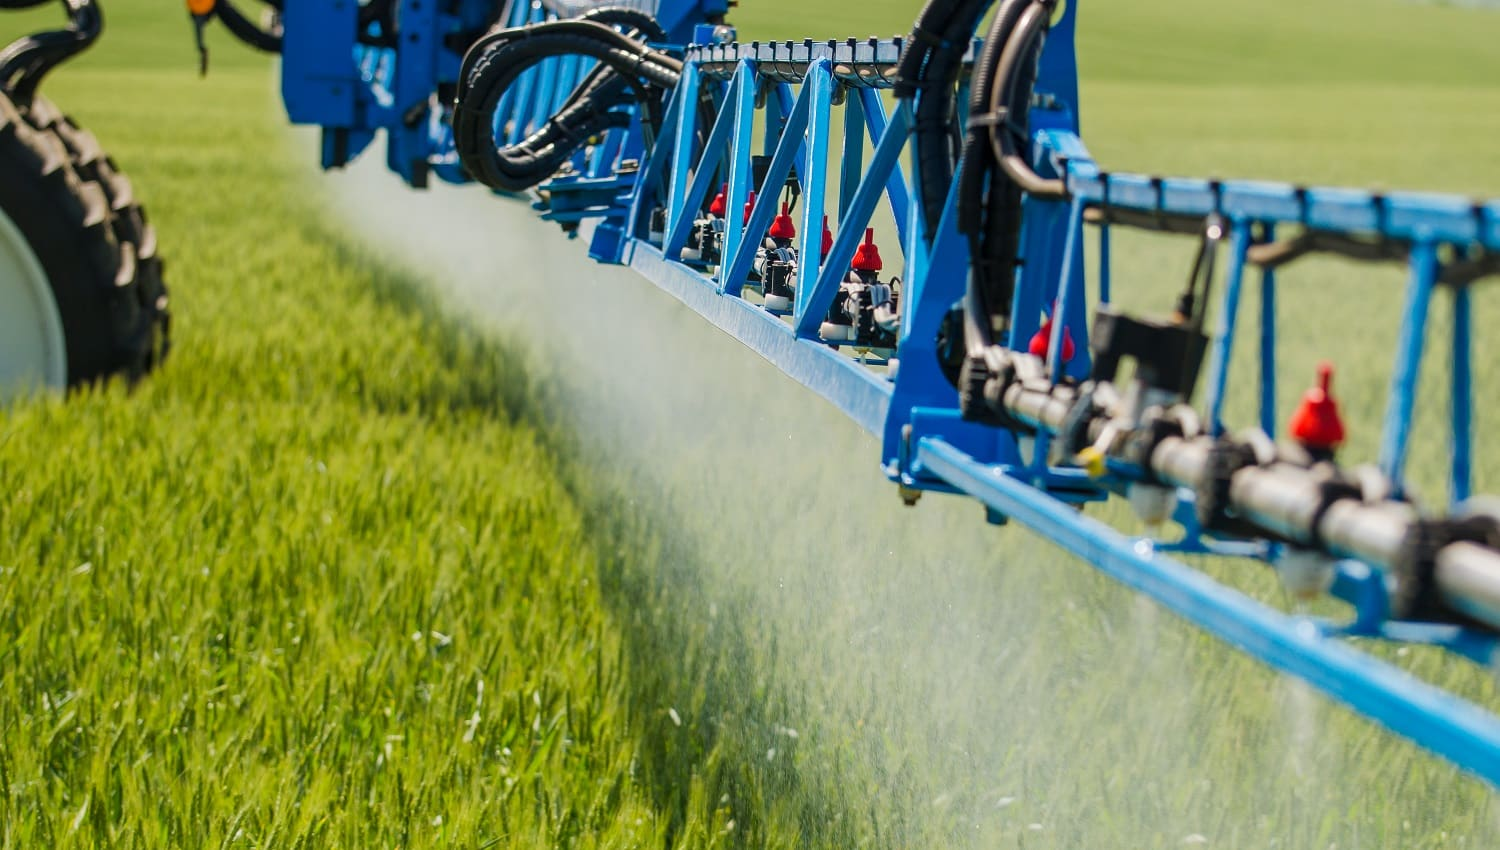 Agricultural sprayers, spray chemicals on young wheat spraying pesticides on wheat field with sprayer